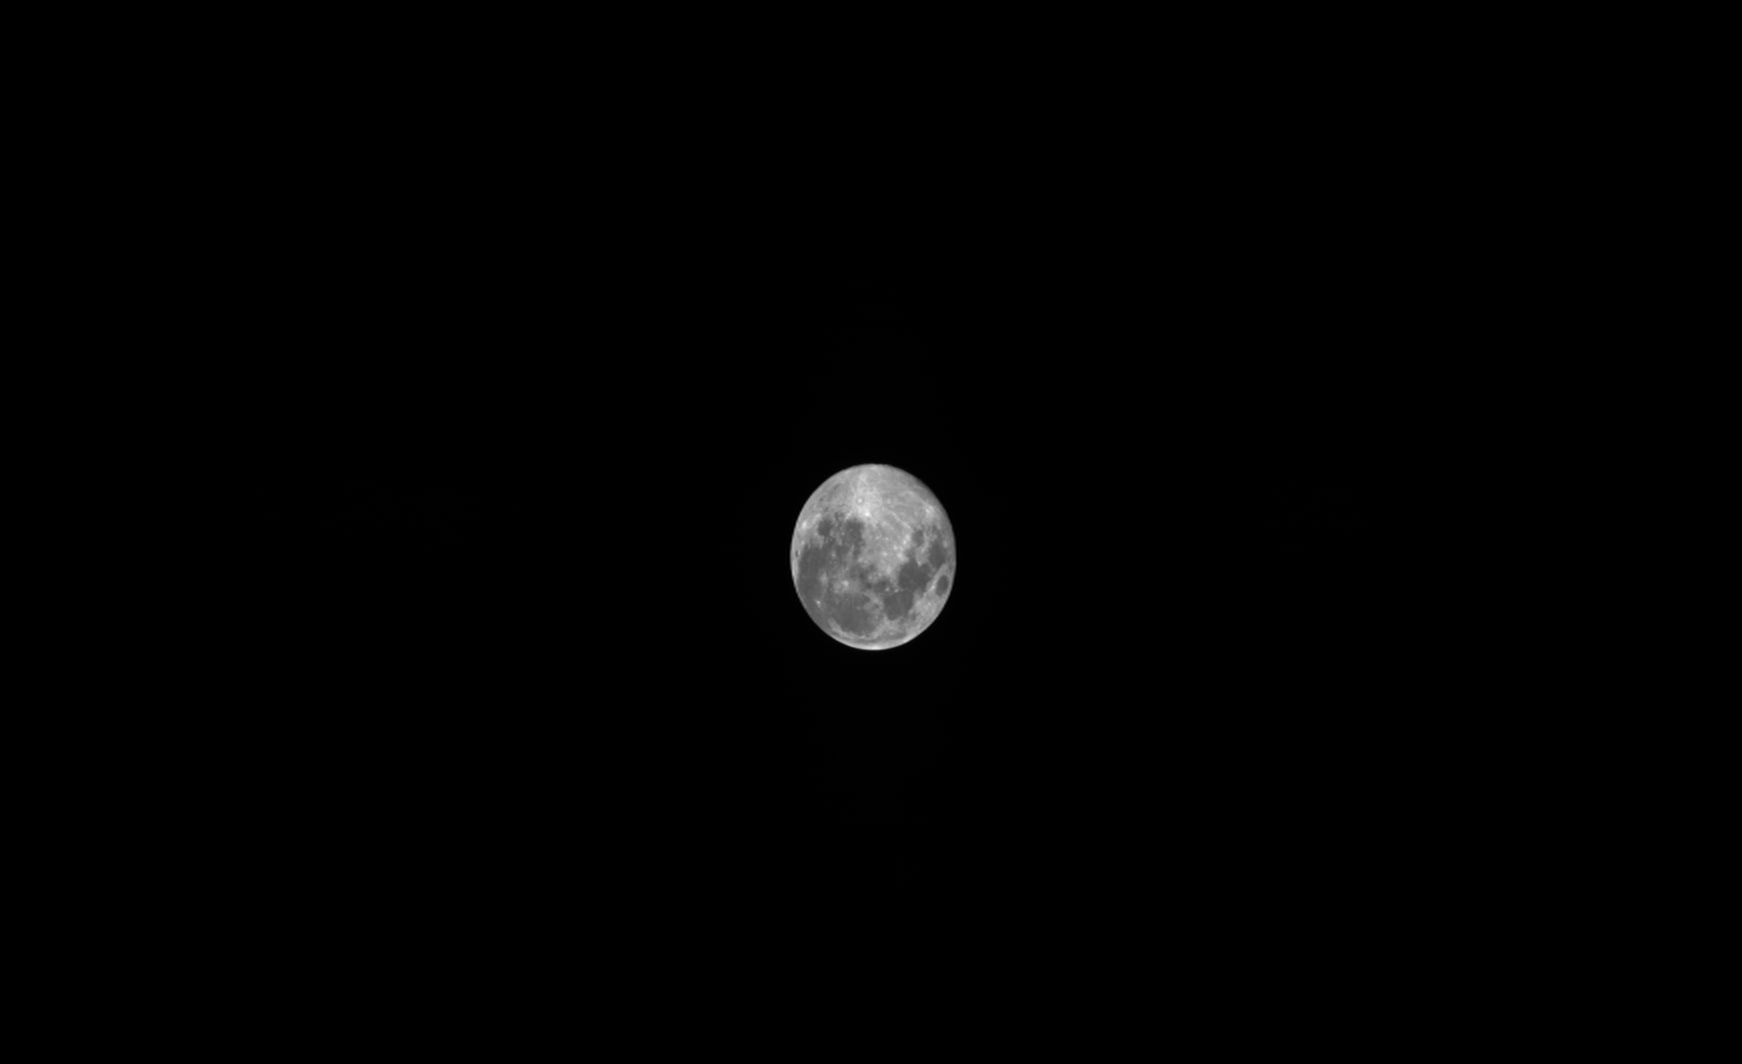 An image of the moon taken to test PROBA-V's automated moon calibration built-in to the system